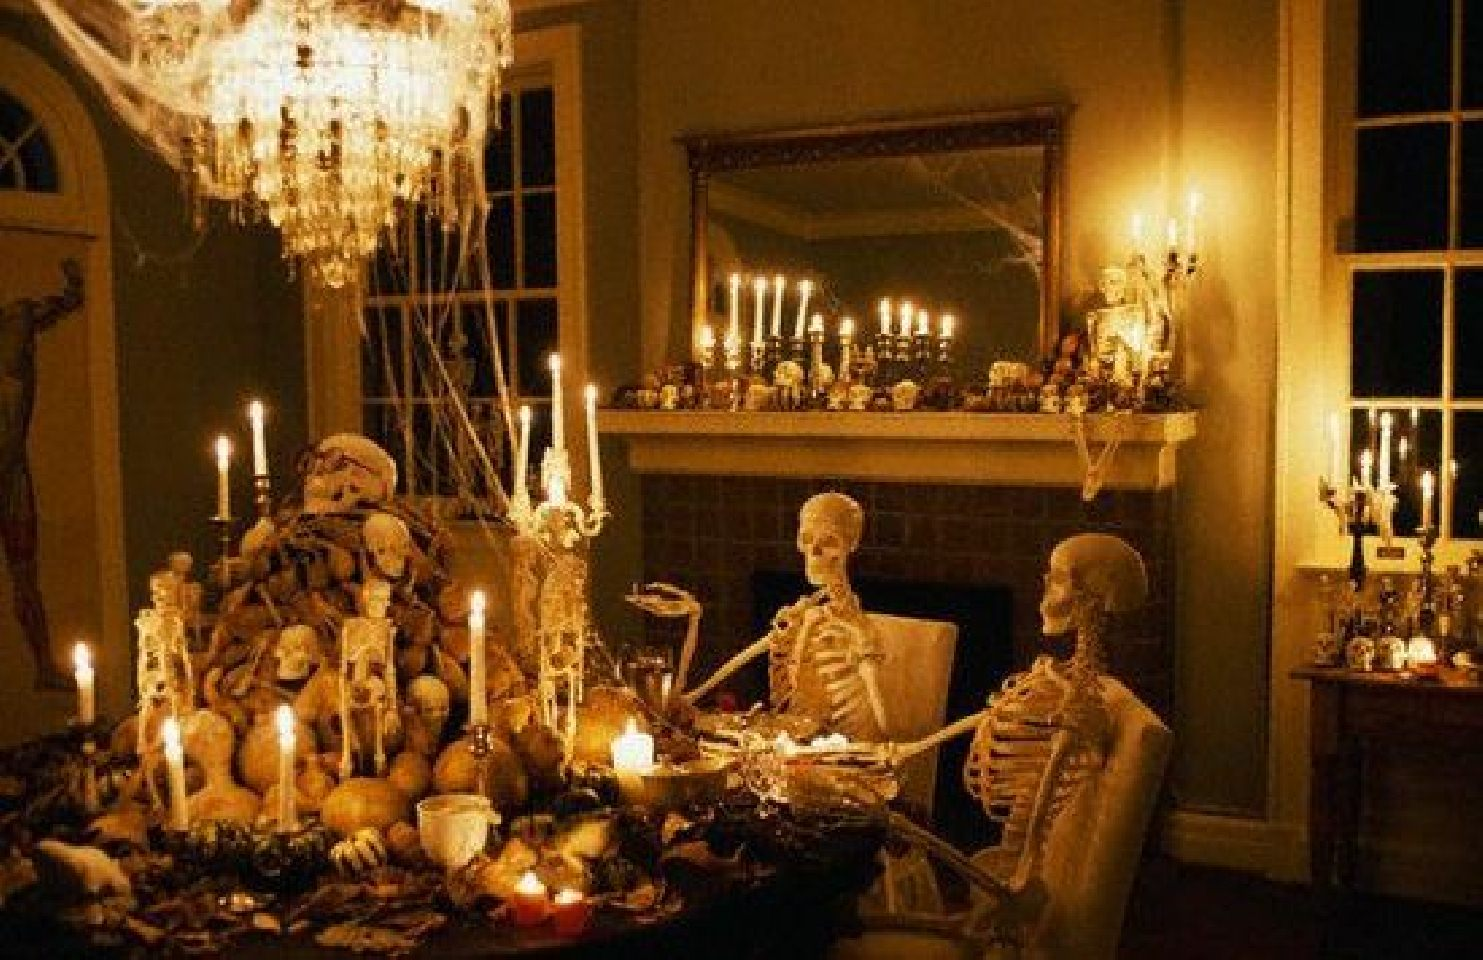 House decoration ideas 2017 for halloween party lighting Scary halloween decorating ideas inside